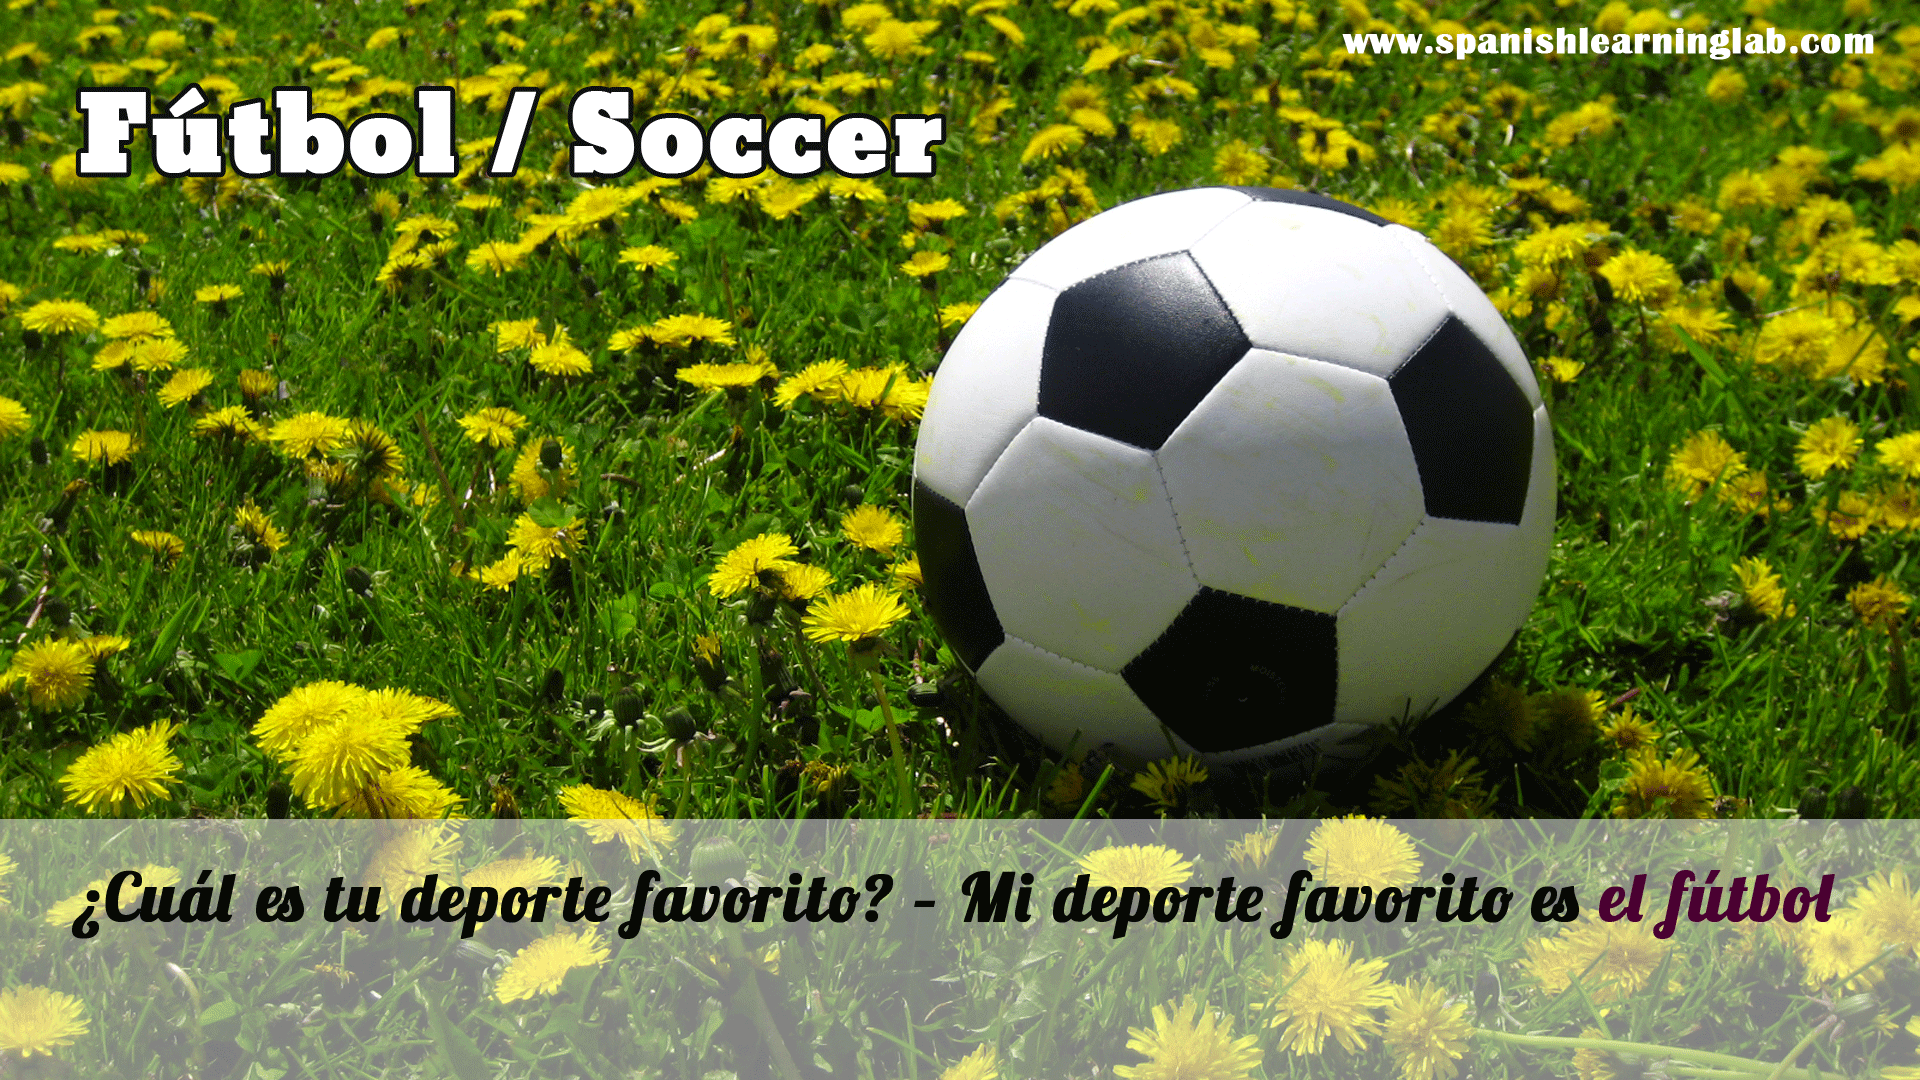 football soccer what is your favorite sport my favorite